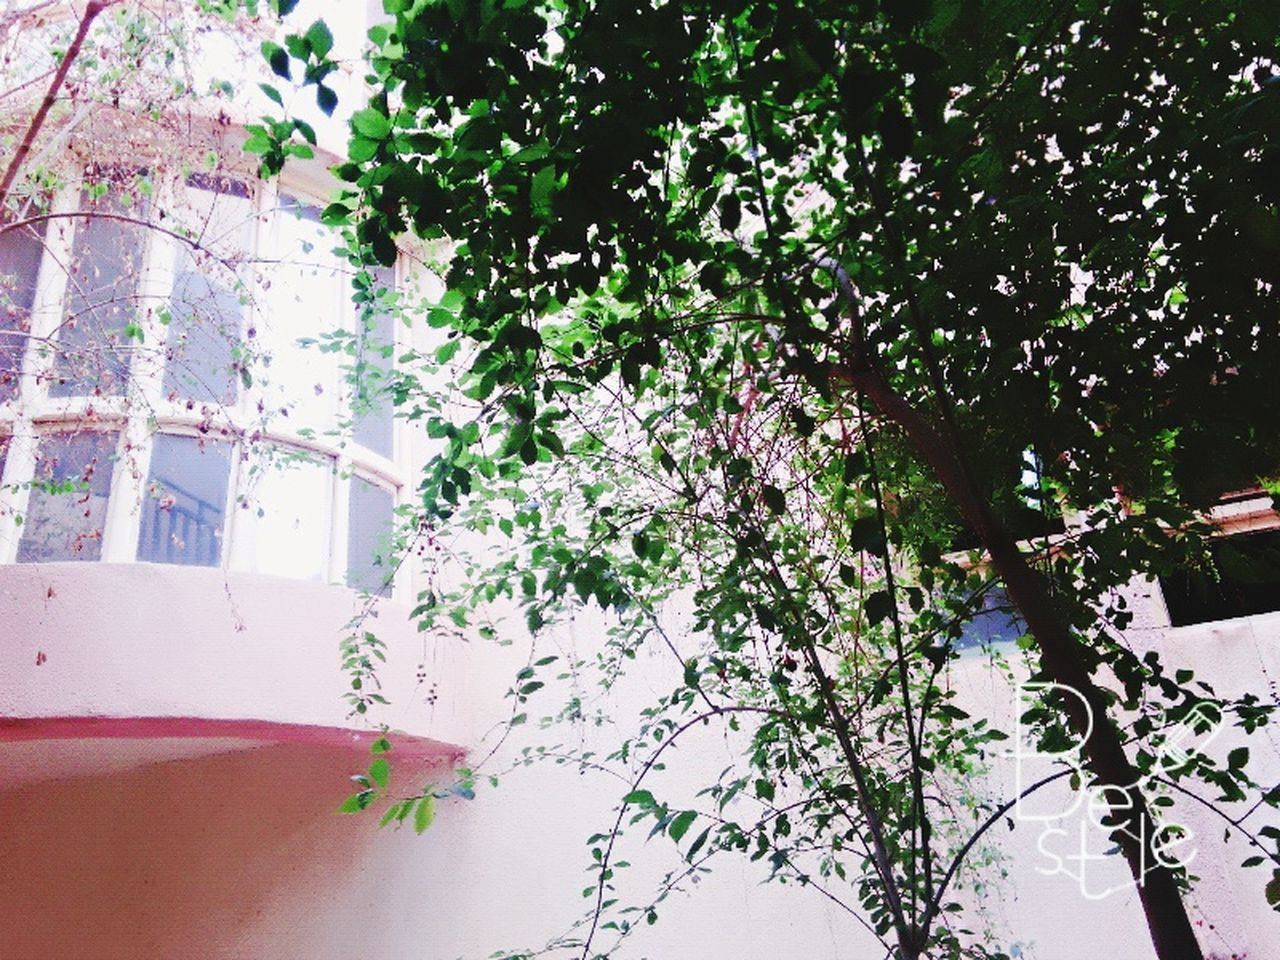 tree, growth, day, branch, no people, nature, outdoors, flower, building exterior, architecture, low angle view, beauty in nature, built structure, fragility, close-up, freshness